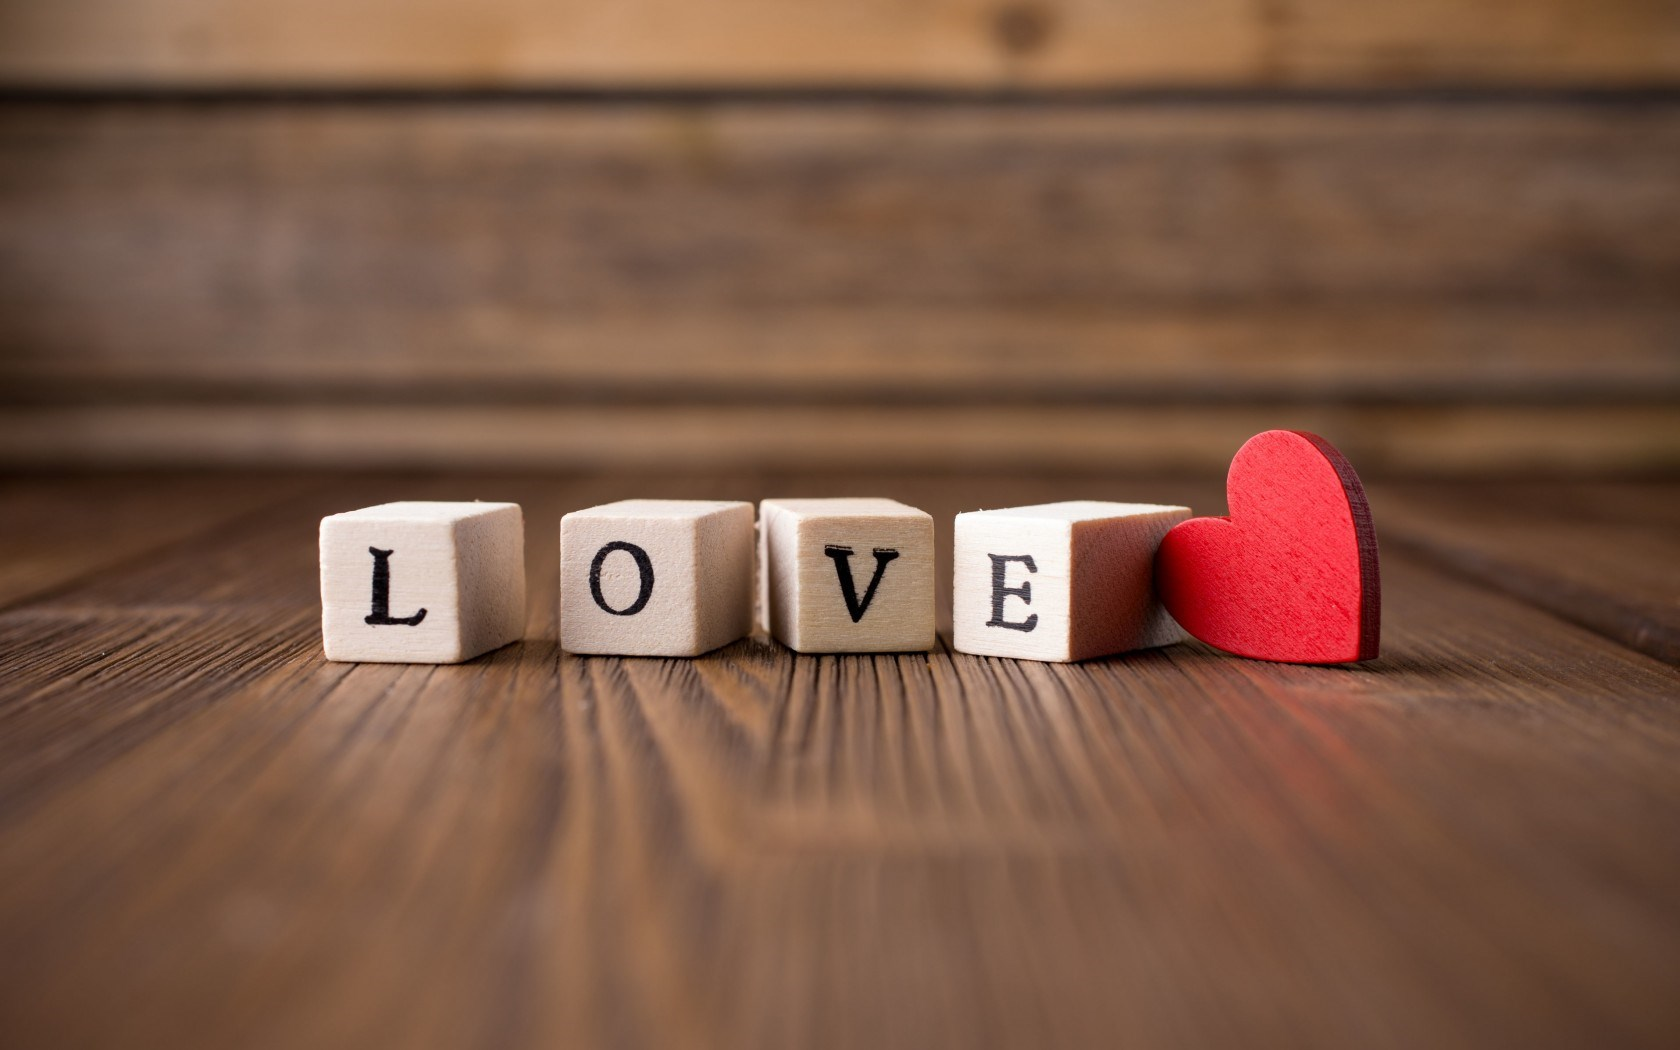 Learning to Love As God